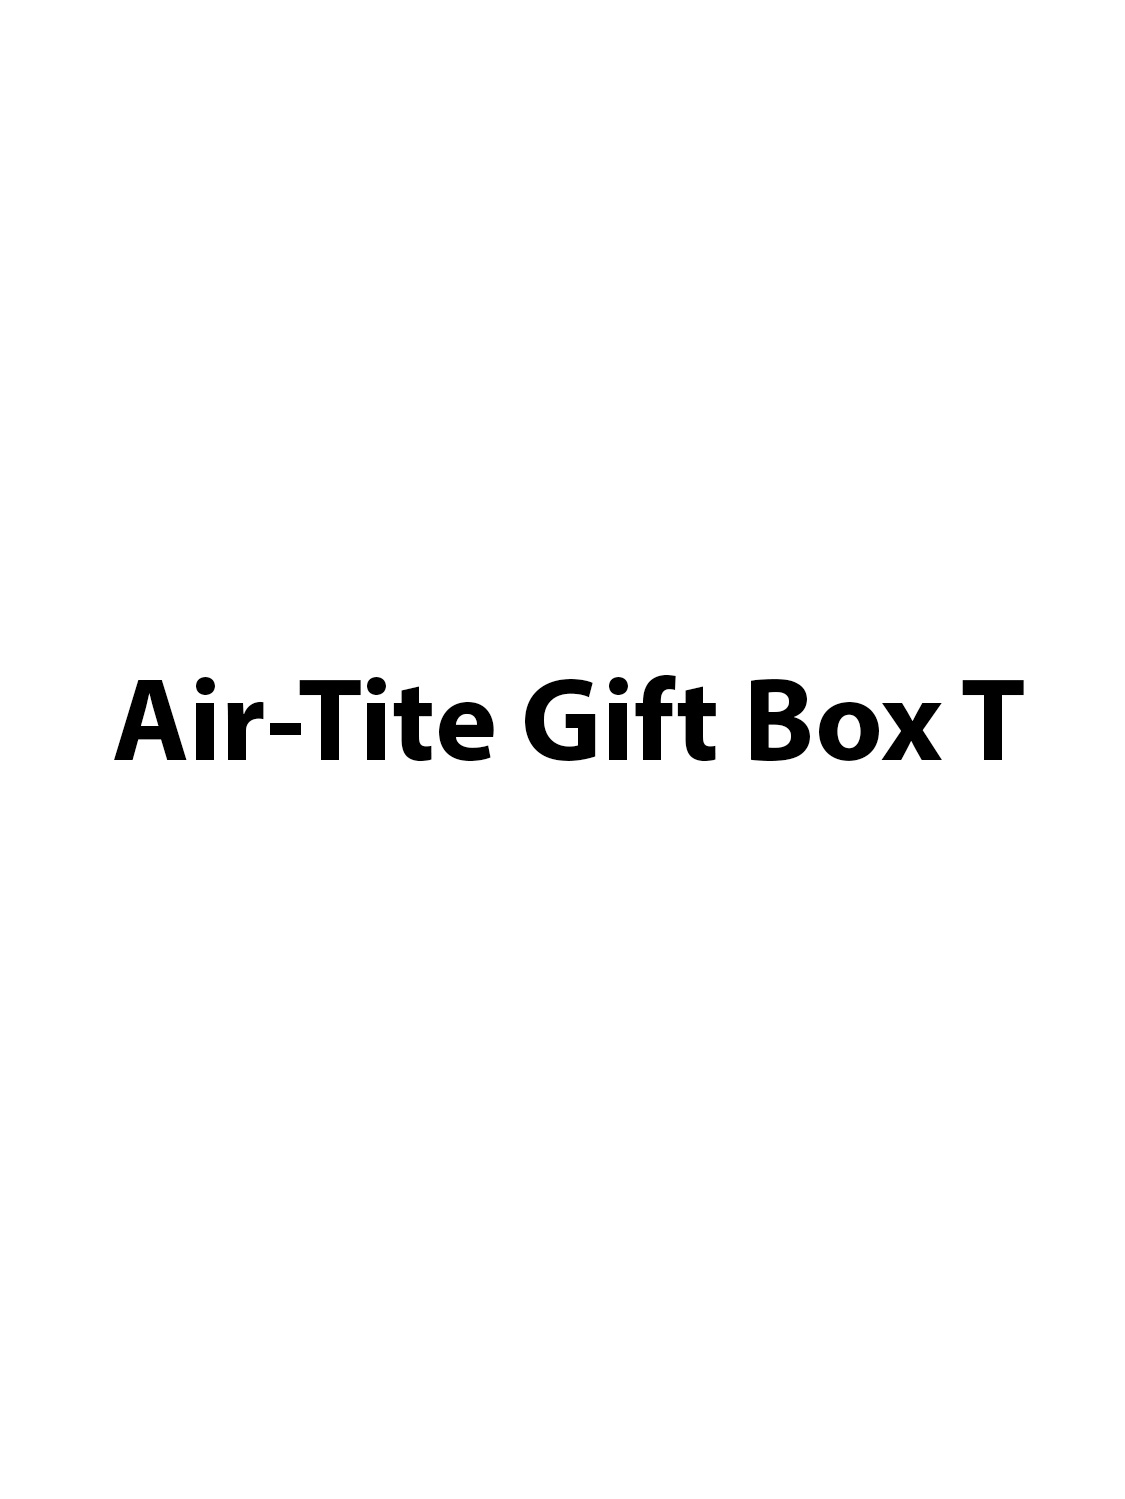 Air-Tite Gift Box T - Purchasing SKU